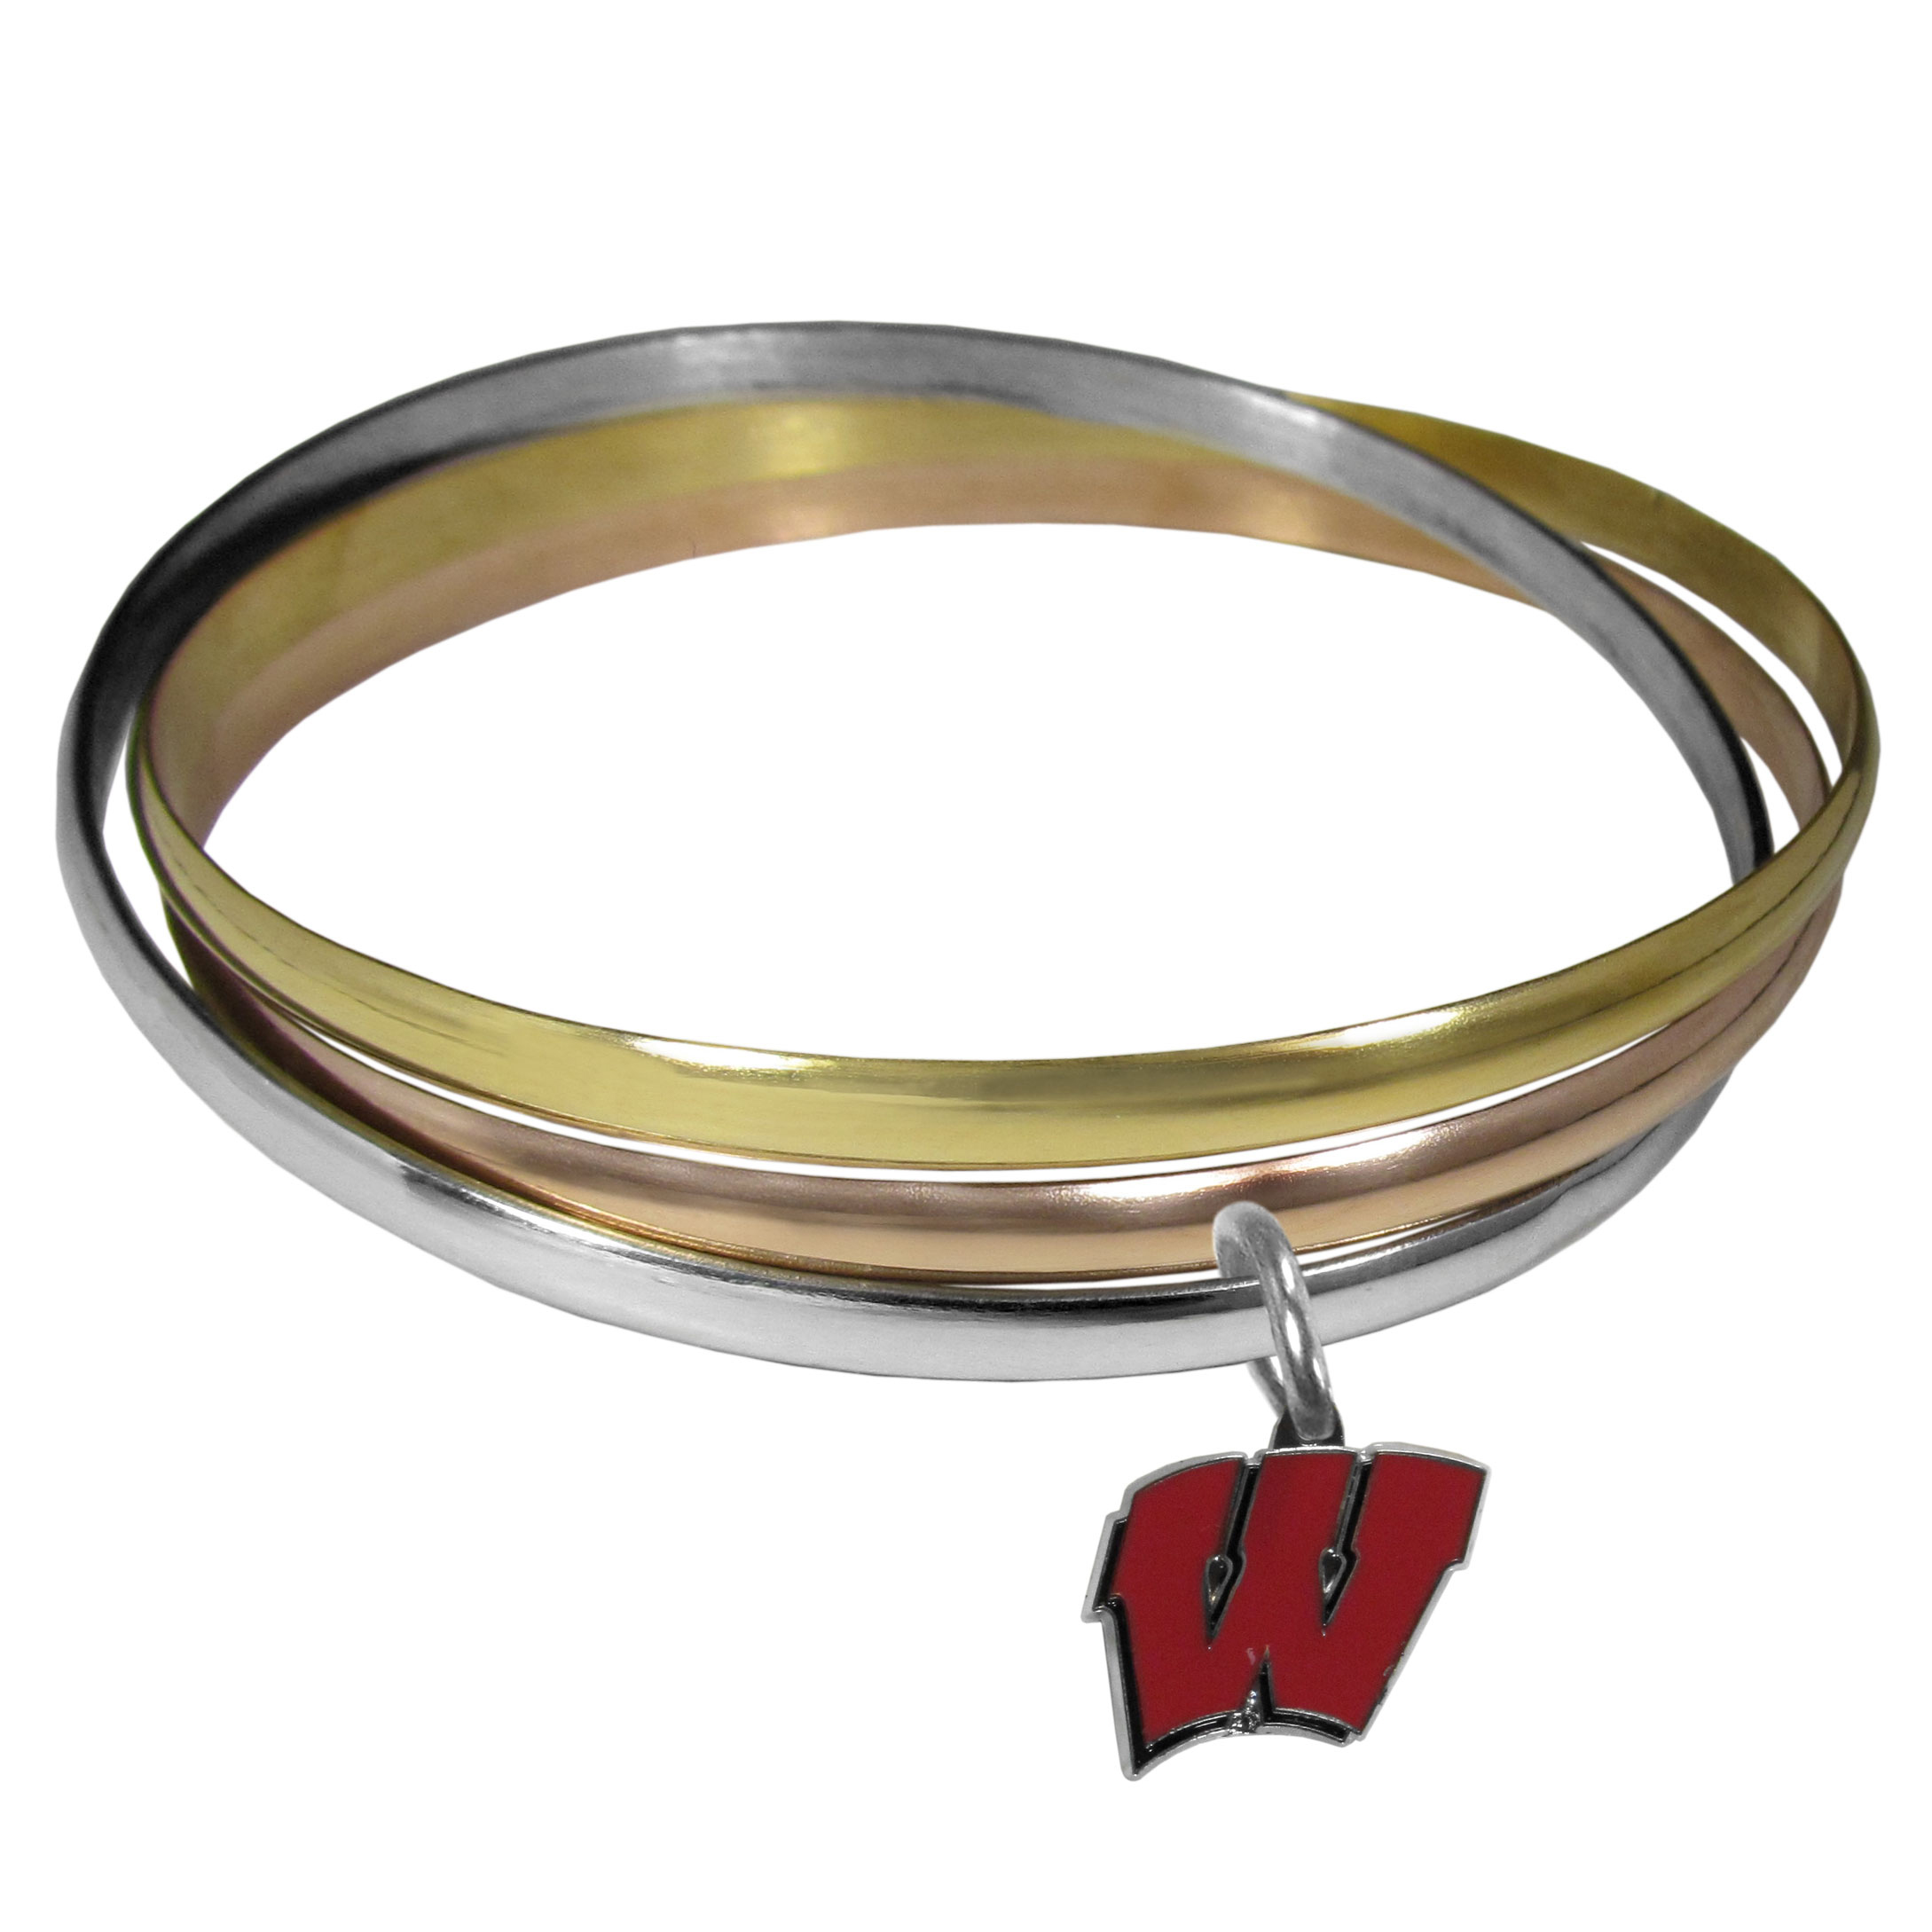 Wisconsin Badgers Tri-color Bangle Bracelet - These beautiful bangles come in a interlocking style and feature a fully cast Wisconsin Badgers charm with enameled team colors. The bracelet has a silver toned bangle, gold tone bangle and brass toned bangle.